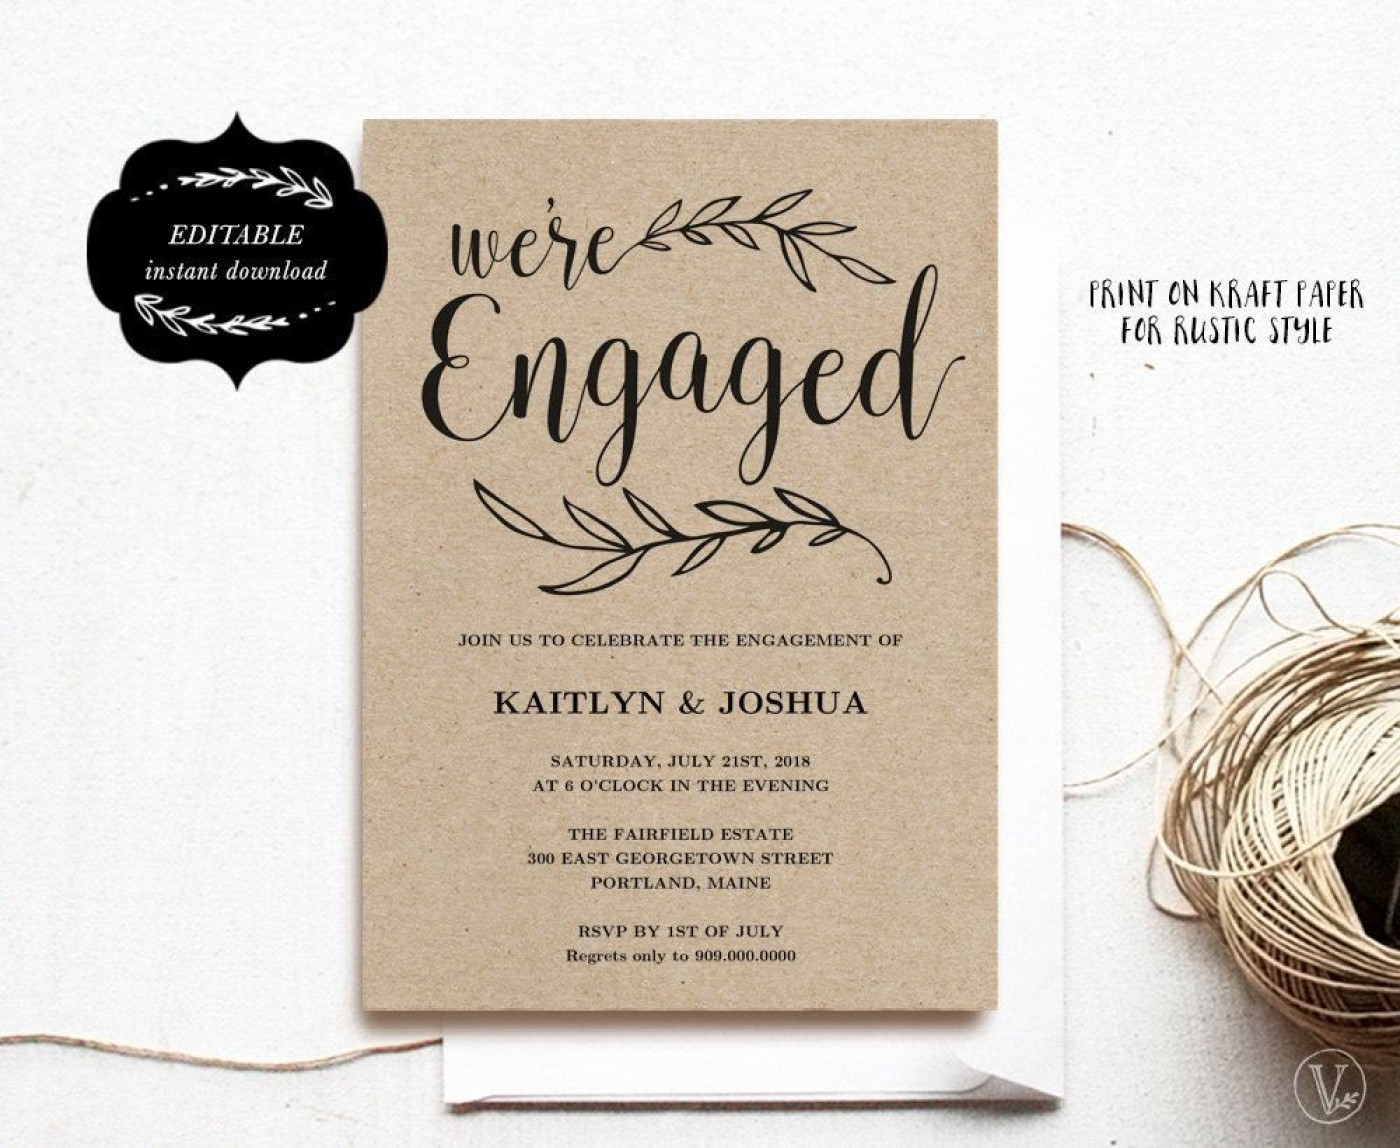 000 Wonderful Free Engagement Invitation Template Online With Photo Design 1400